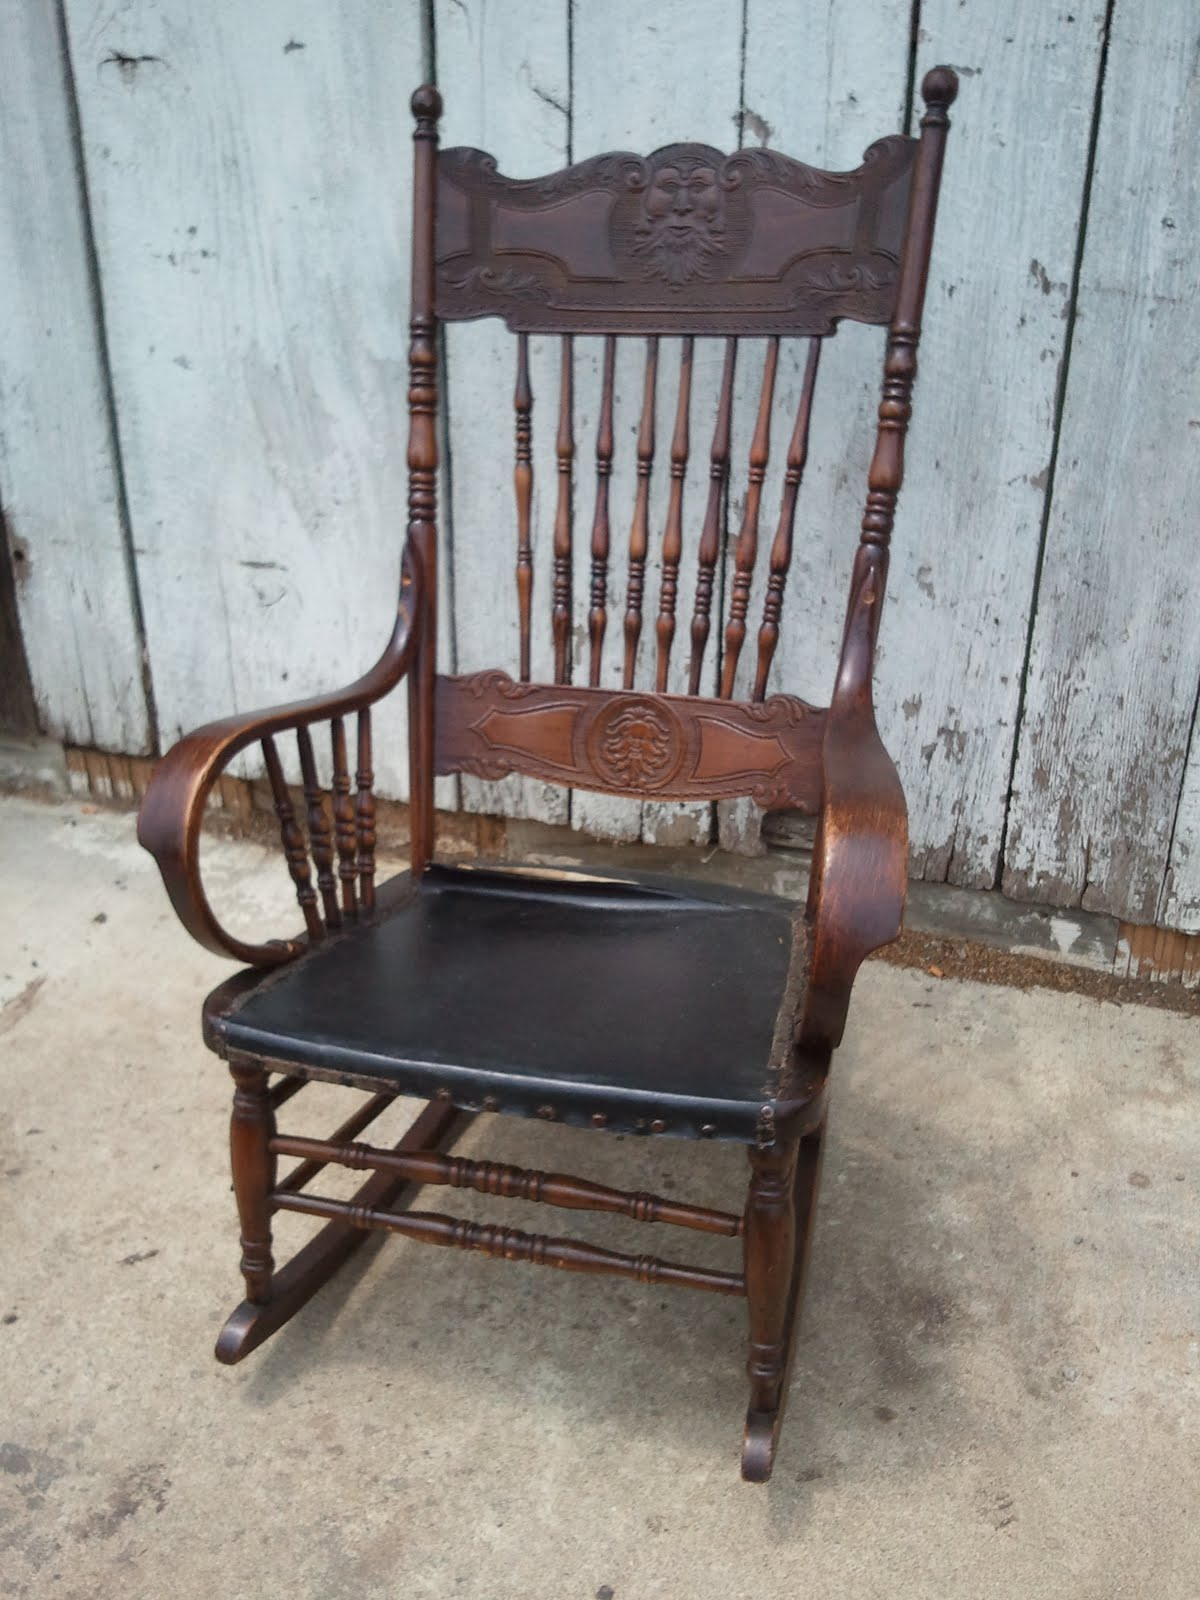 Pressed Back Rocking Chair (ca 1890) - John Mark Power, Antiques Conservator: Pressed Back Rocking Chair